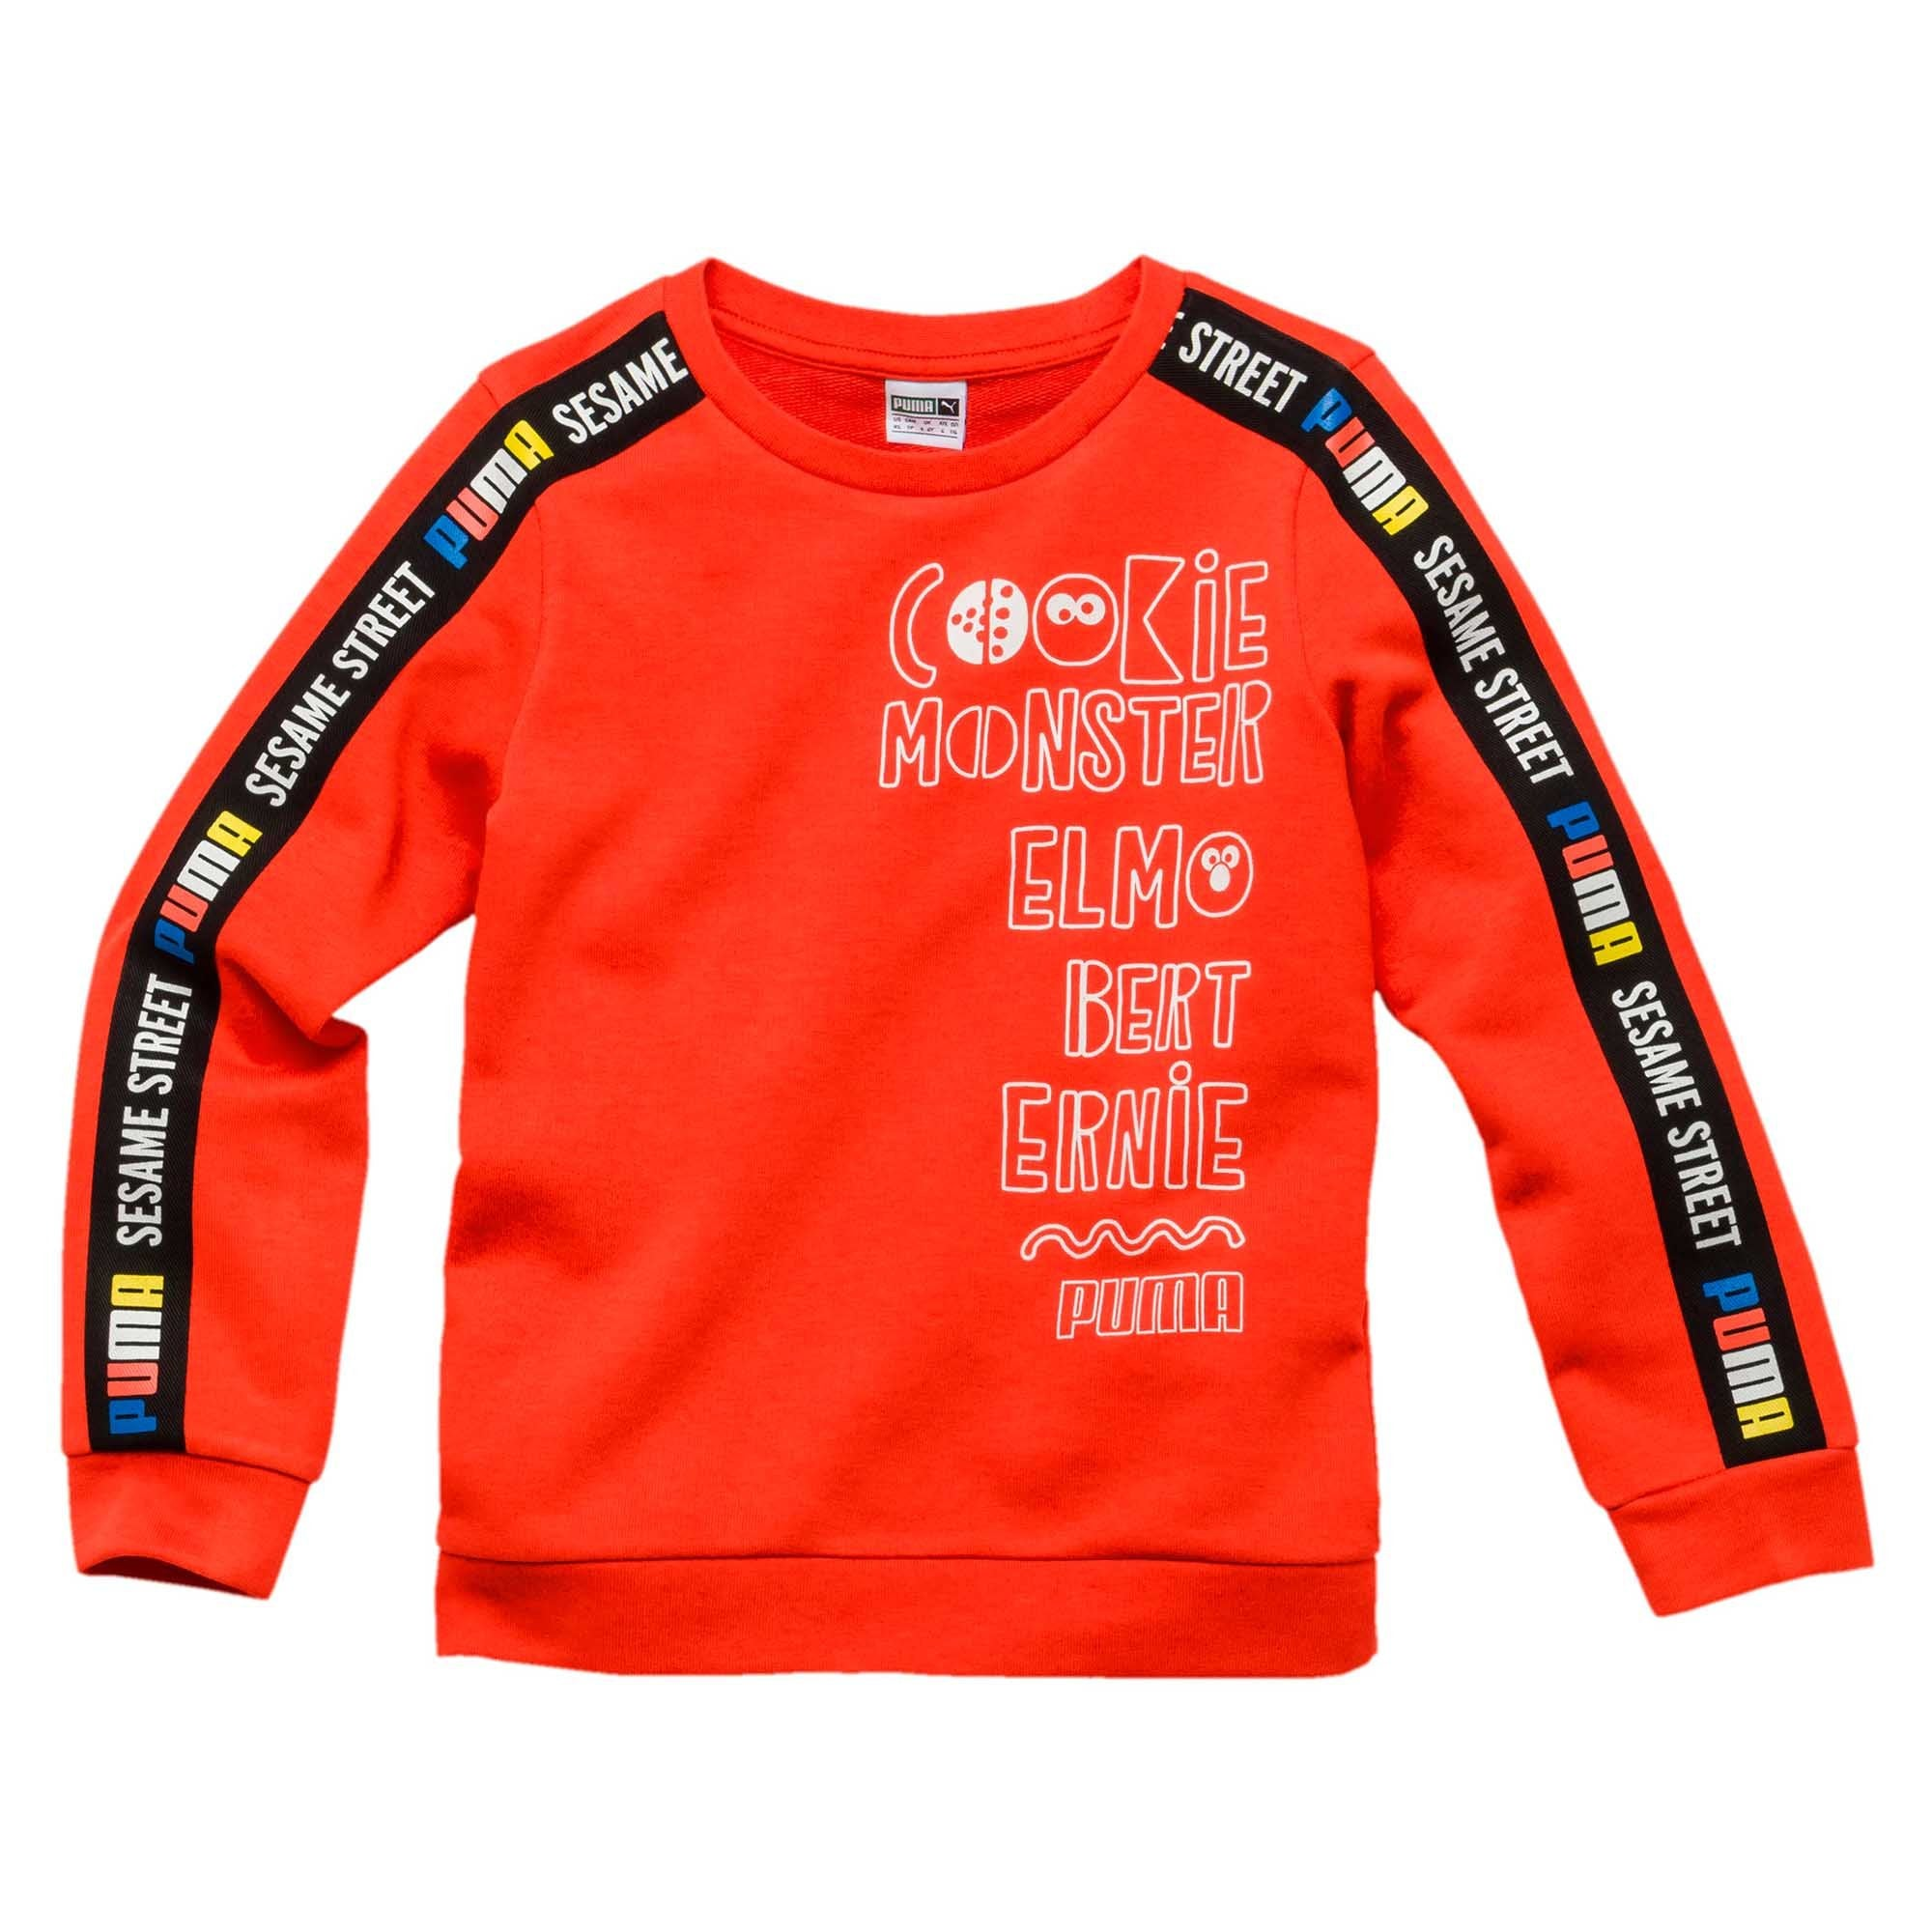 ad1286f05c3fe4 Buy Puma Boys Sesame Street Crewneck Sweatshirt Online in Singapore | Royal  Sporting House